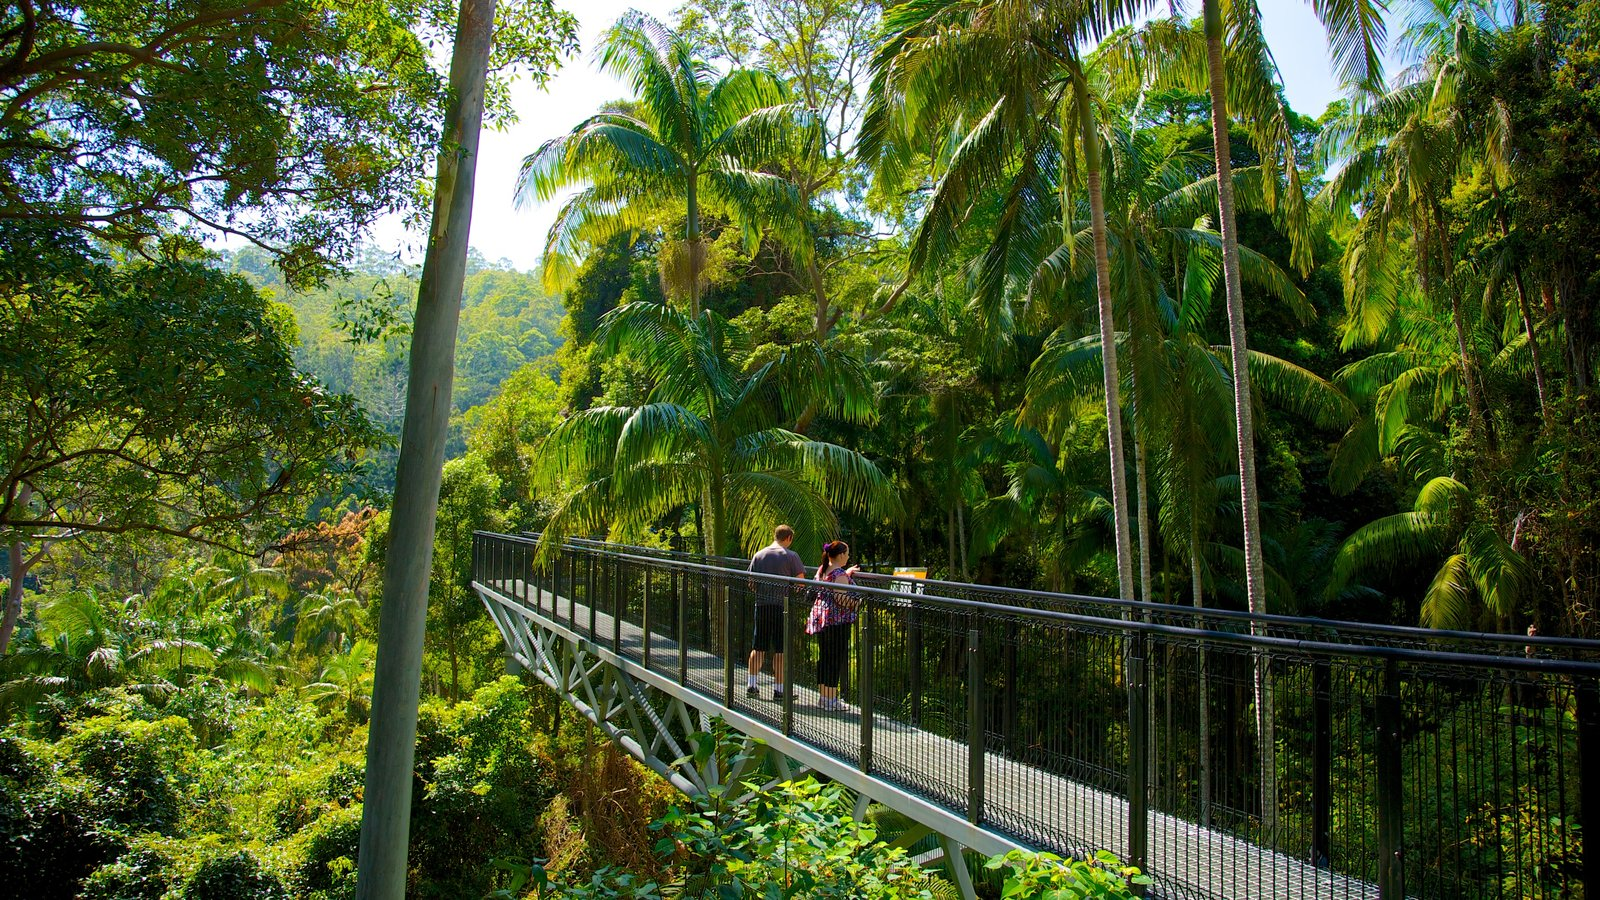 Mount Tamborine Which Includes Tropical Scenes Forest And Hiking Or Walking